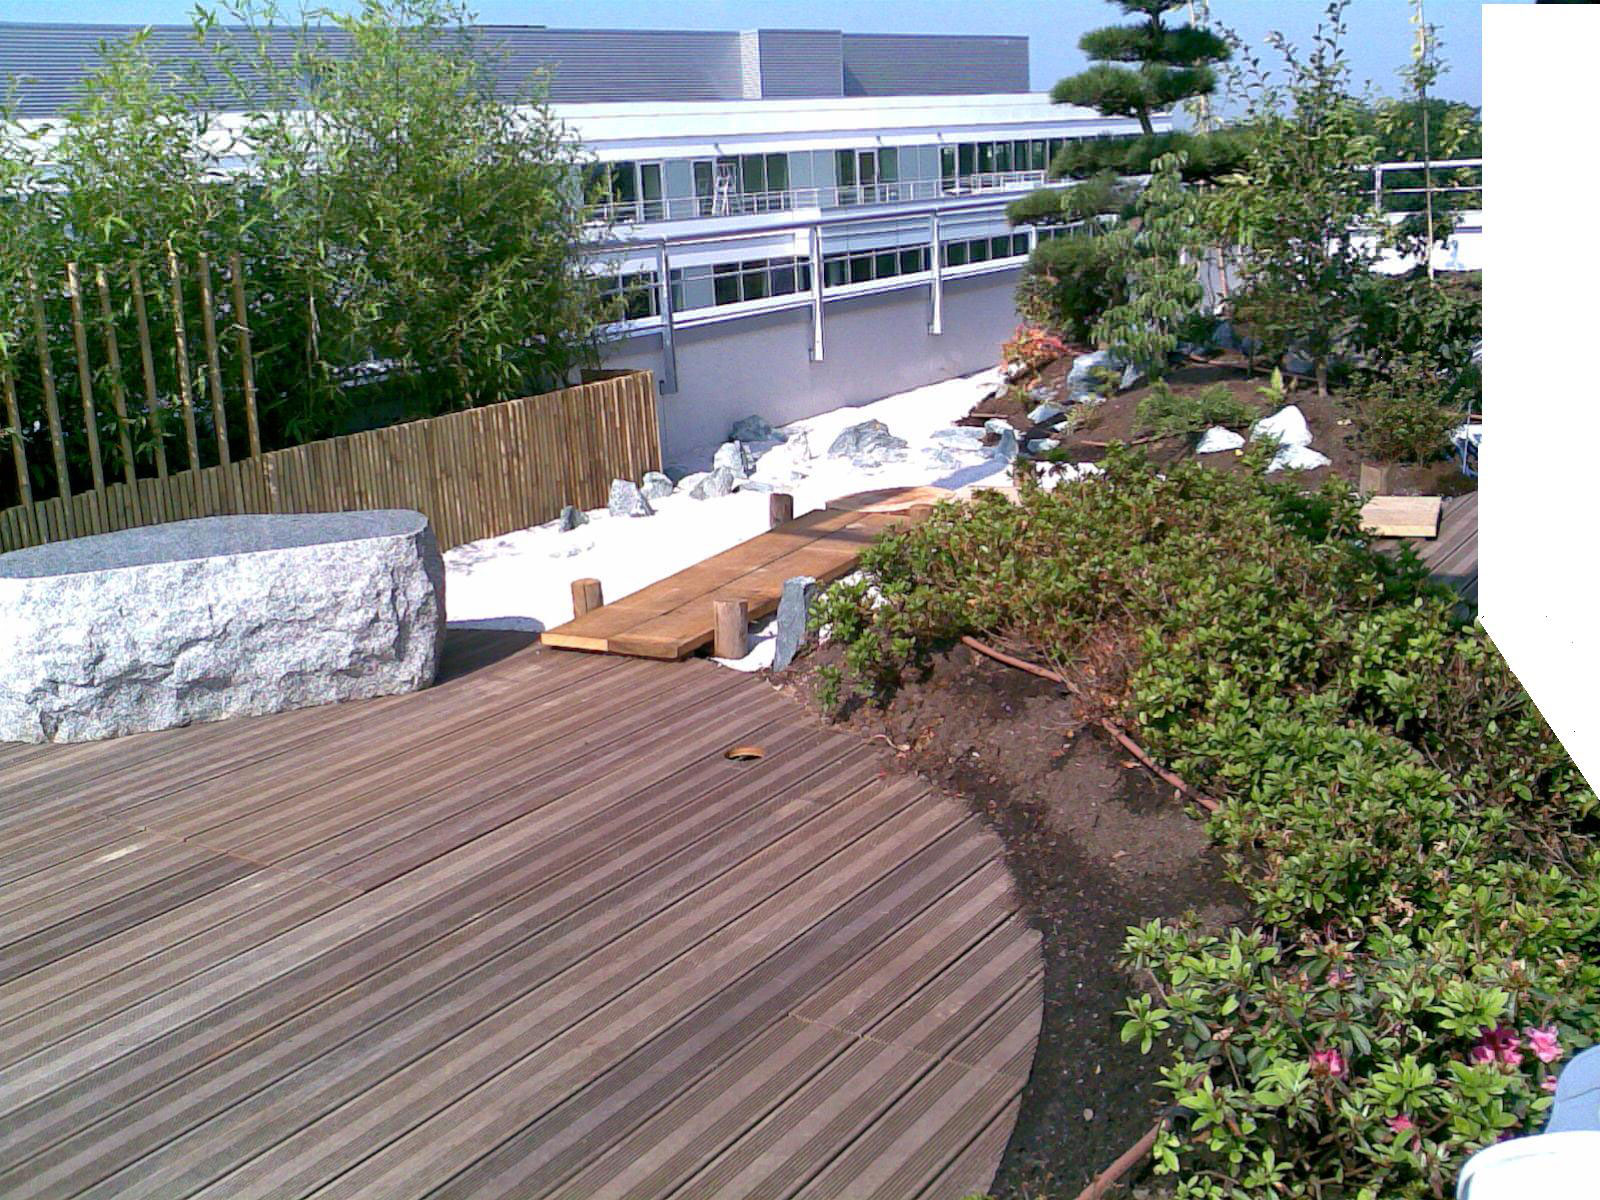 Toit Terrasse Définition Definition Terrasse Acrot Re La D Finition Siplast